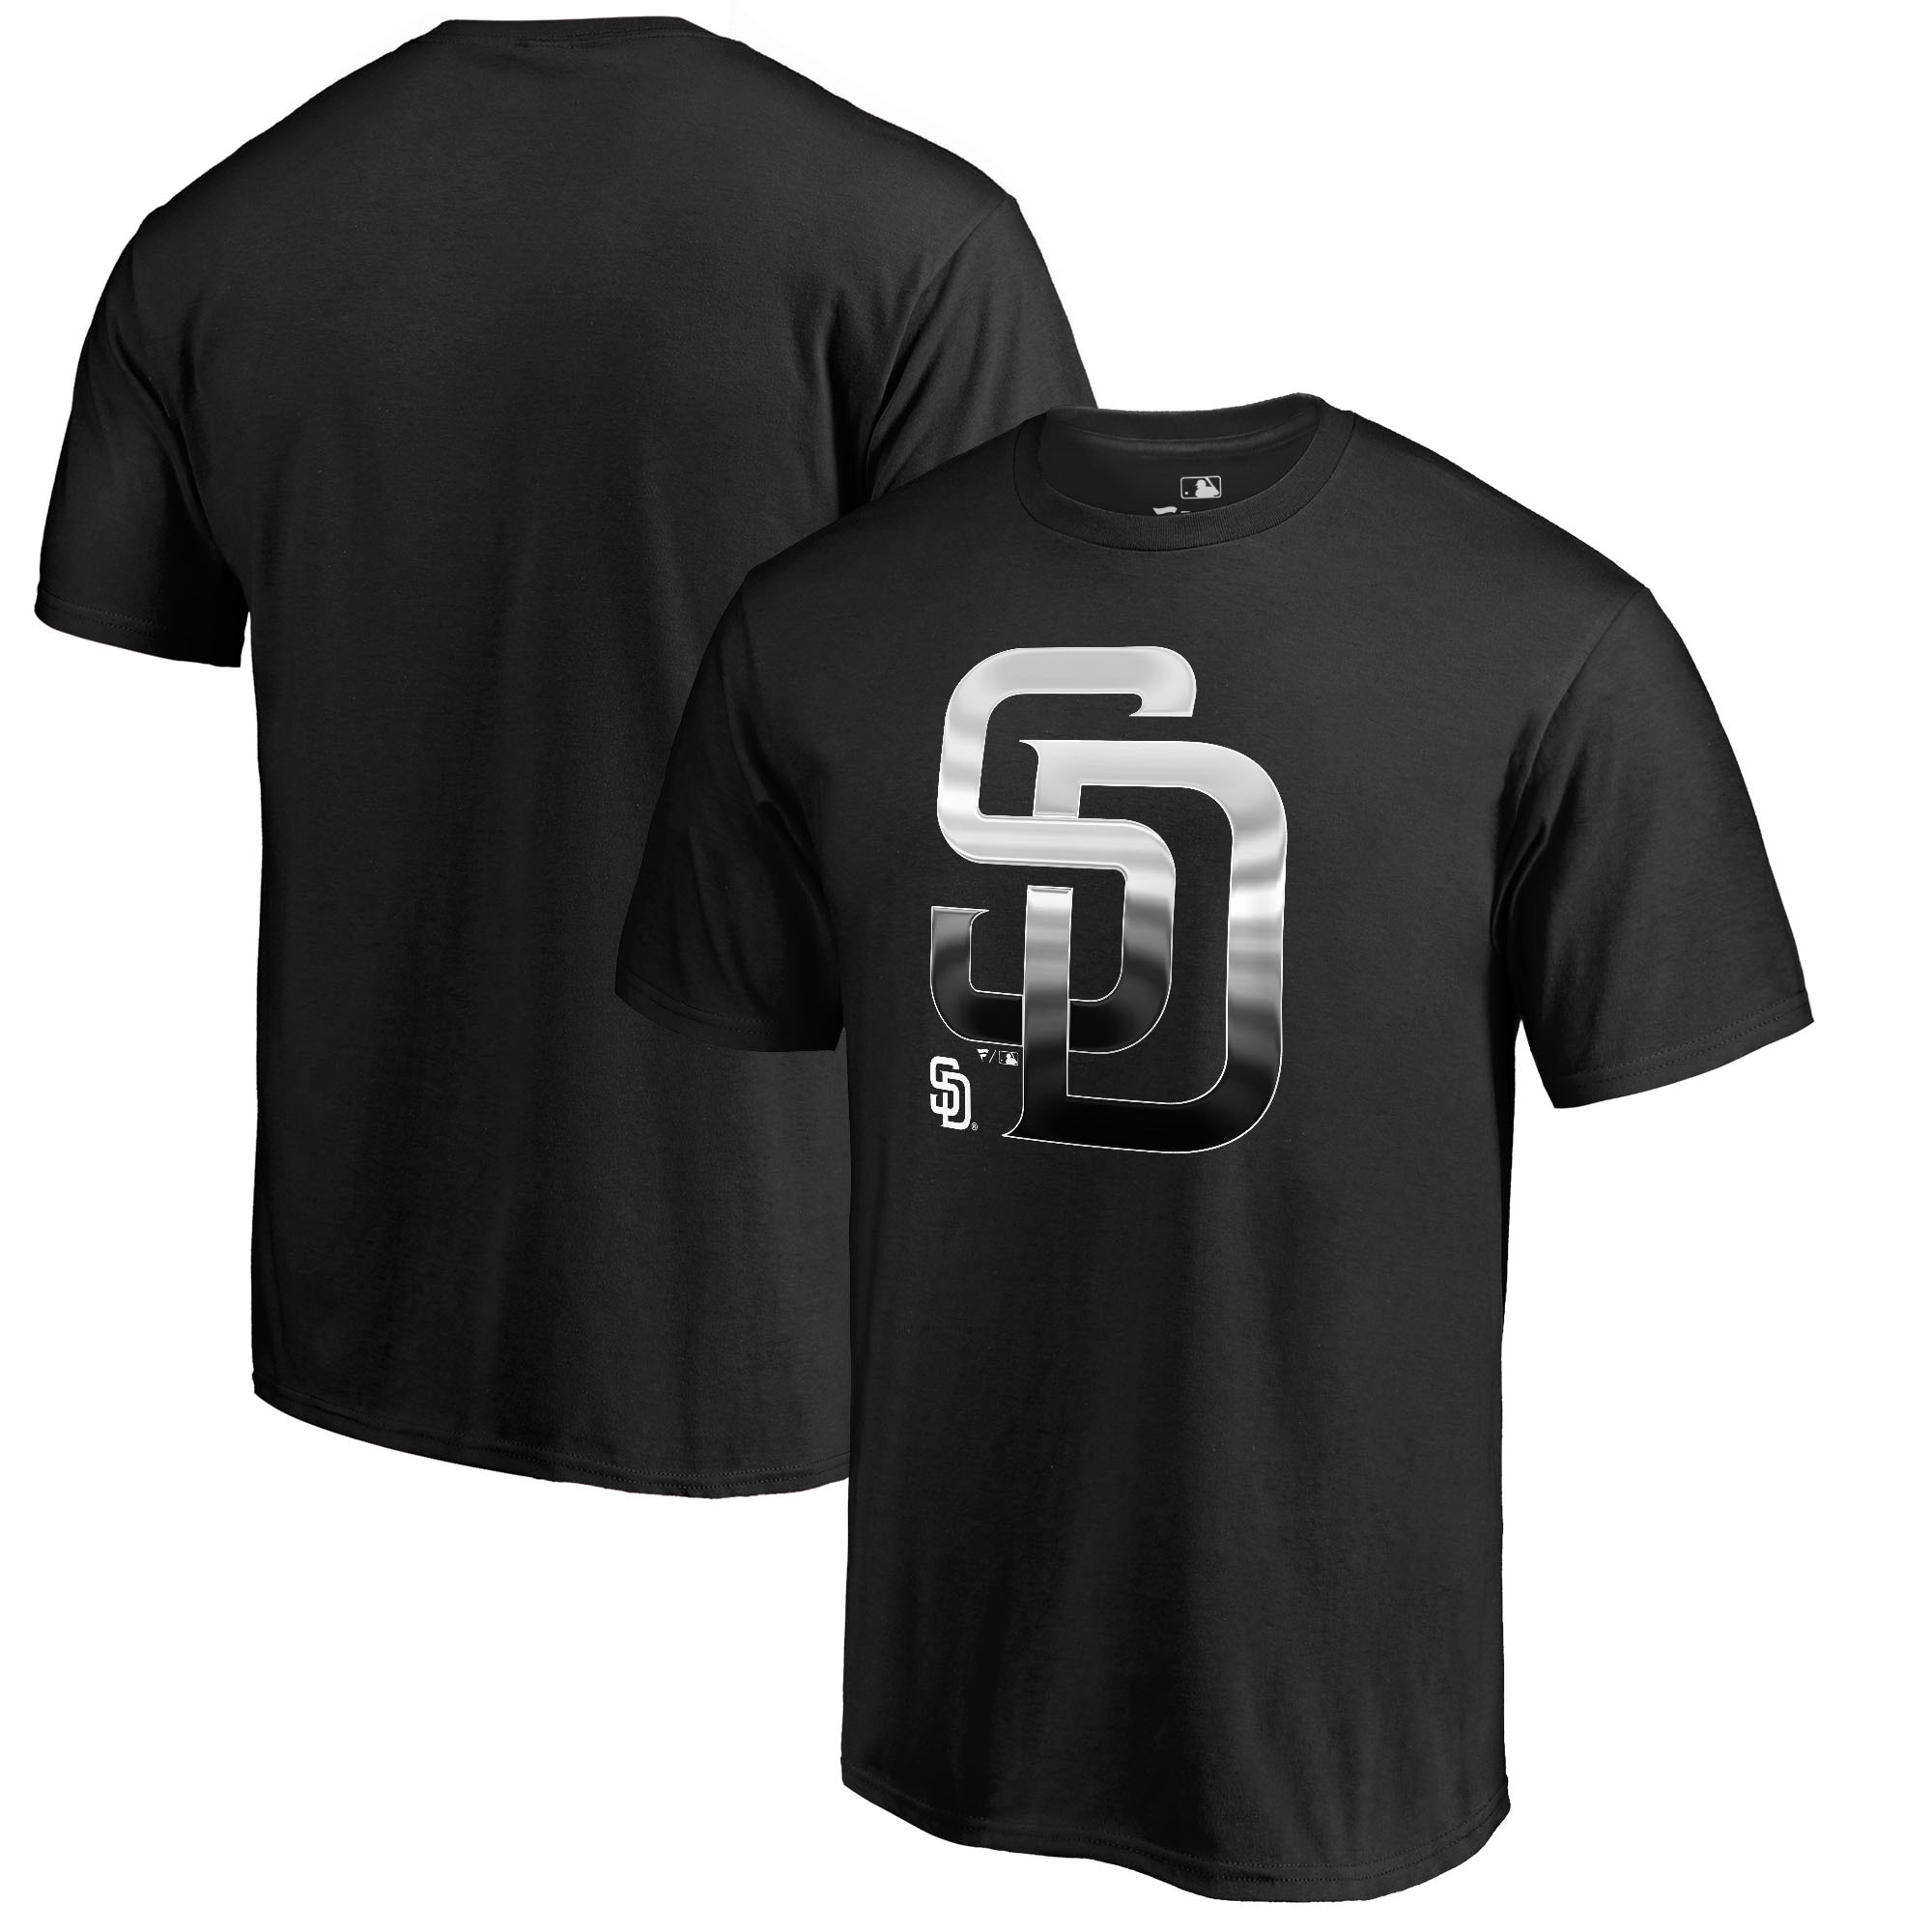 San Diego Padres Fanatics Branded Big & Tall Midnight Mascot T-Shirt - Black